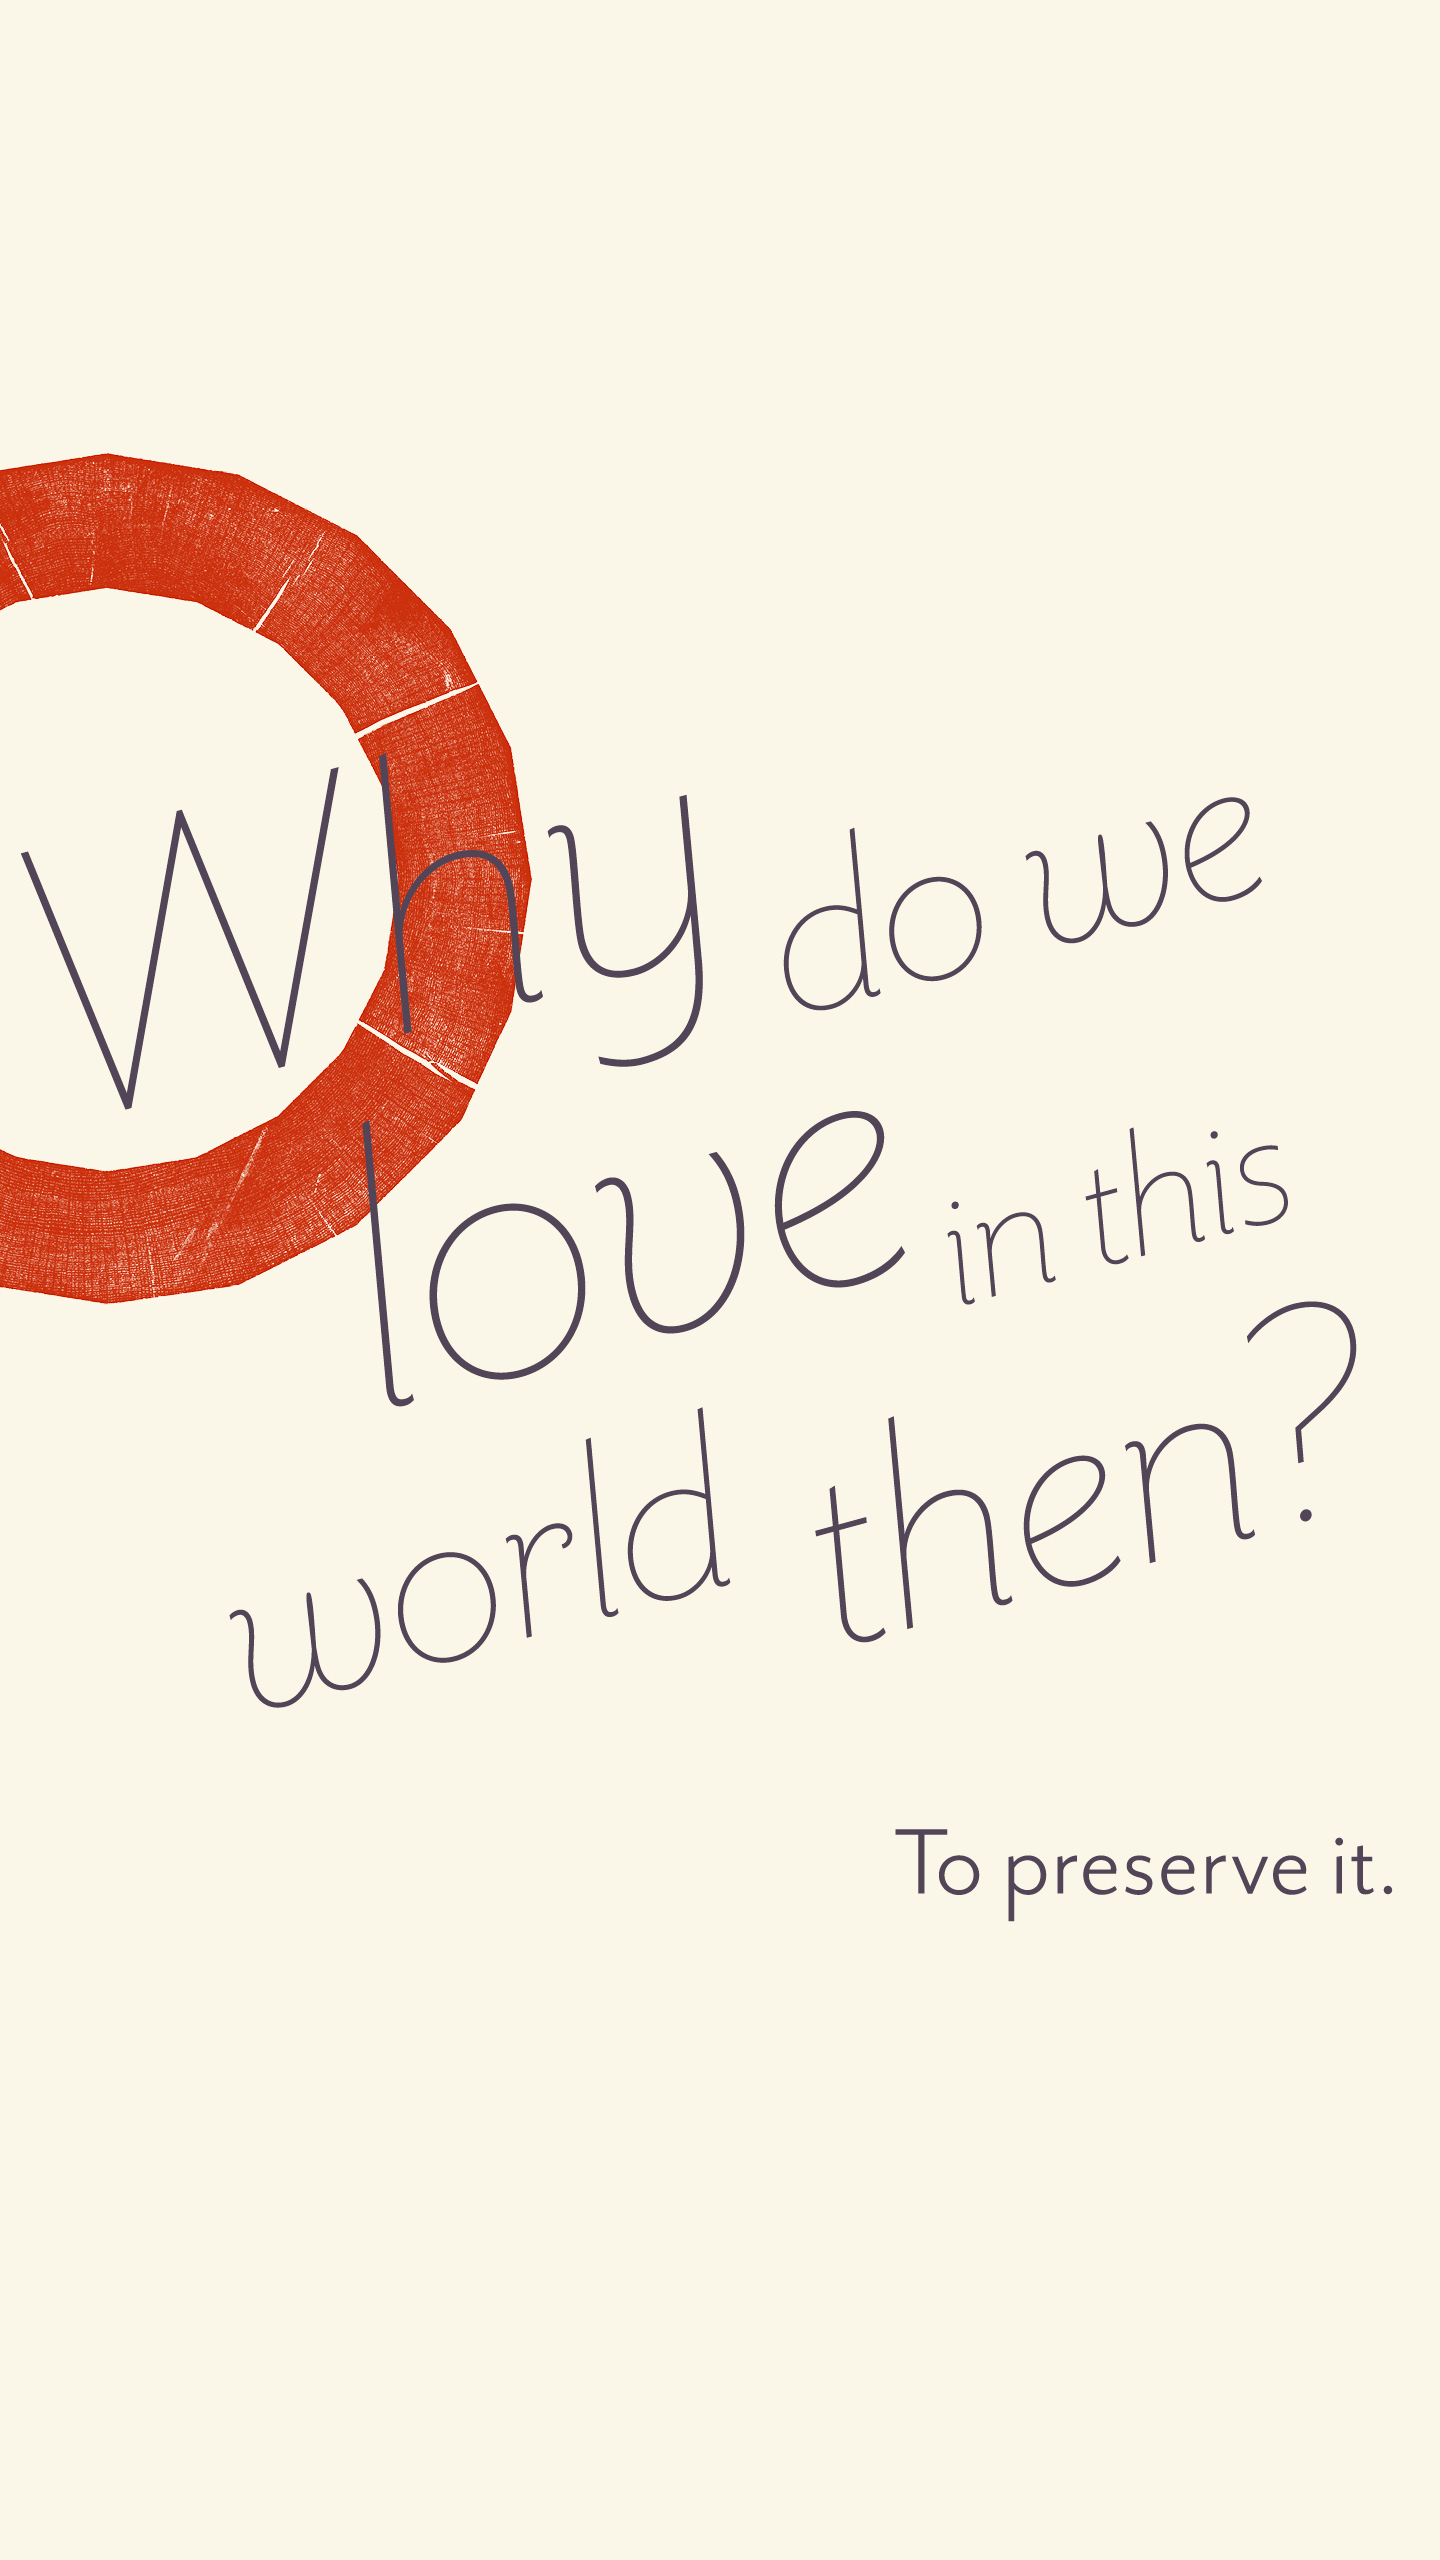 Why do we love in this world then? To preserve it.